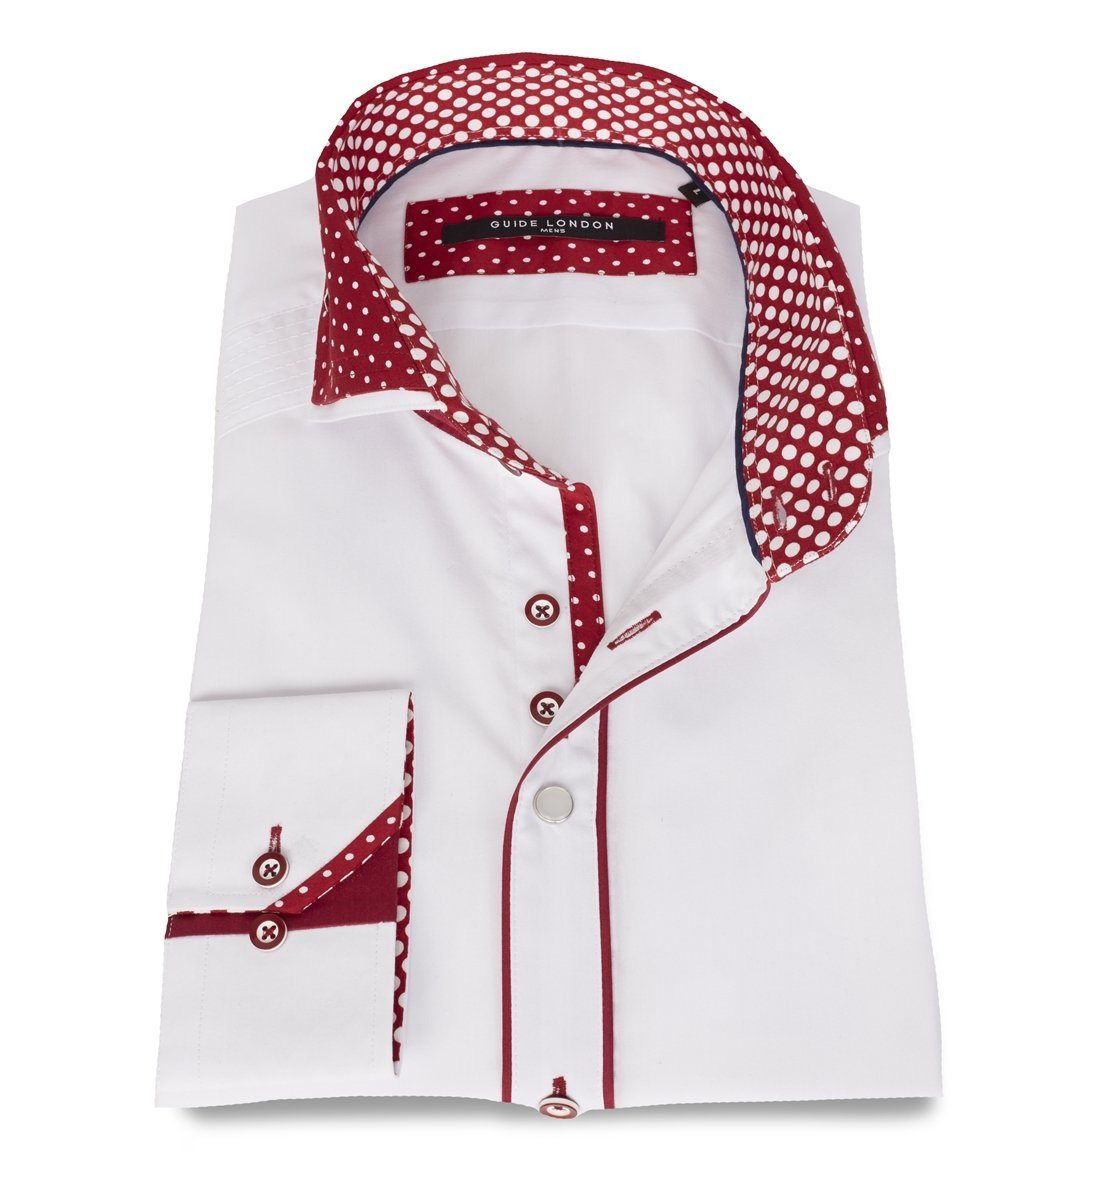 GUIDE WHITE/BURGUNDY Shirt with polka dot print collar